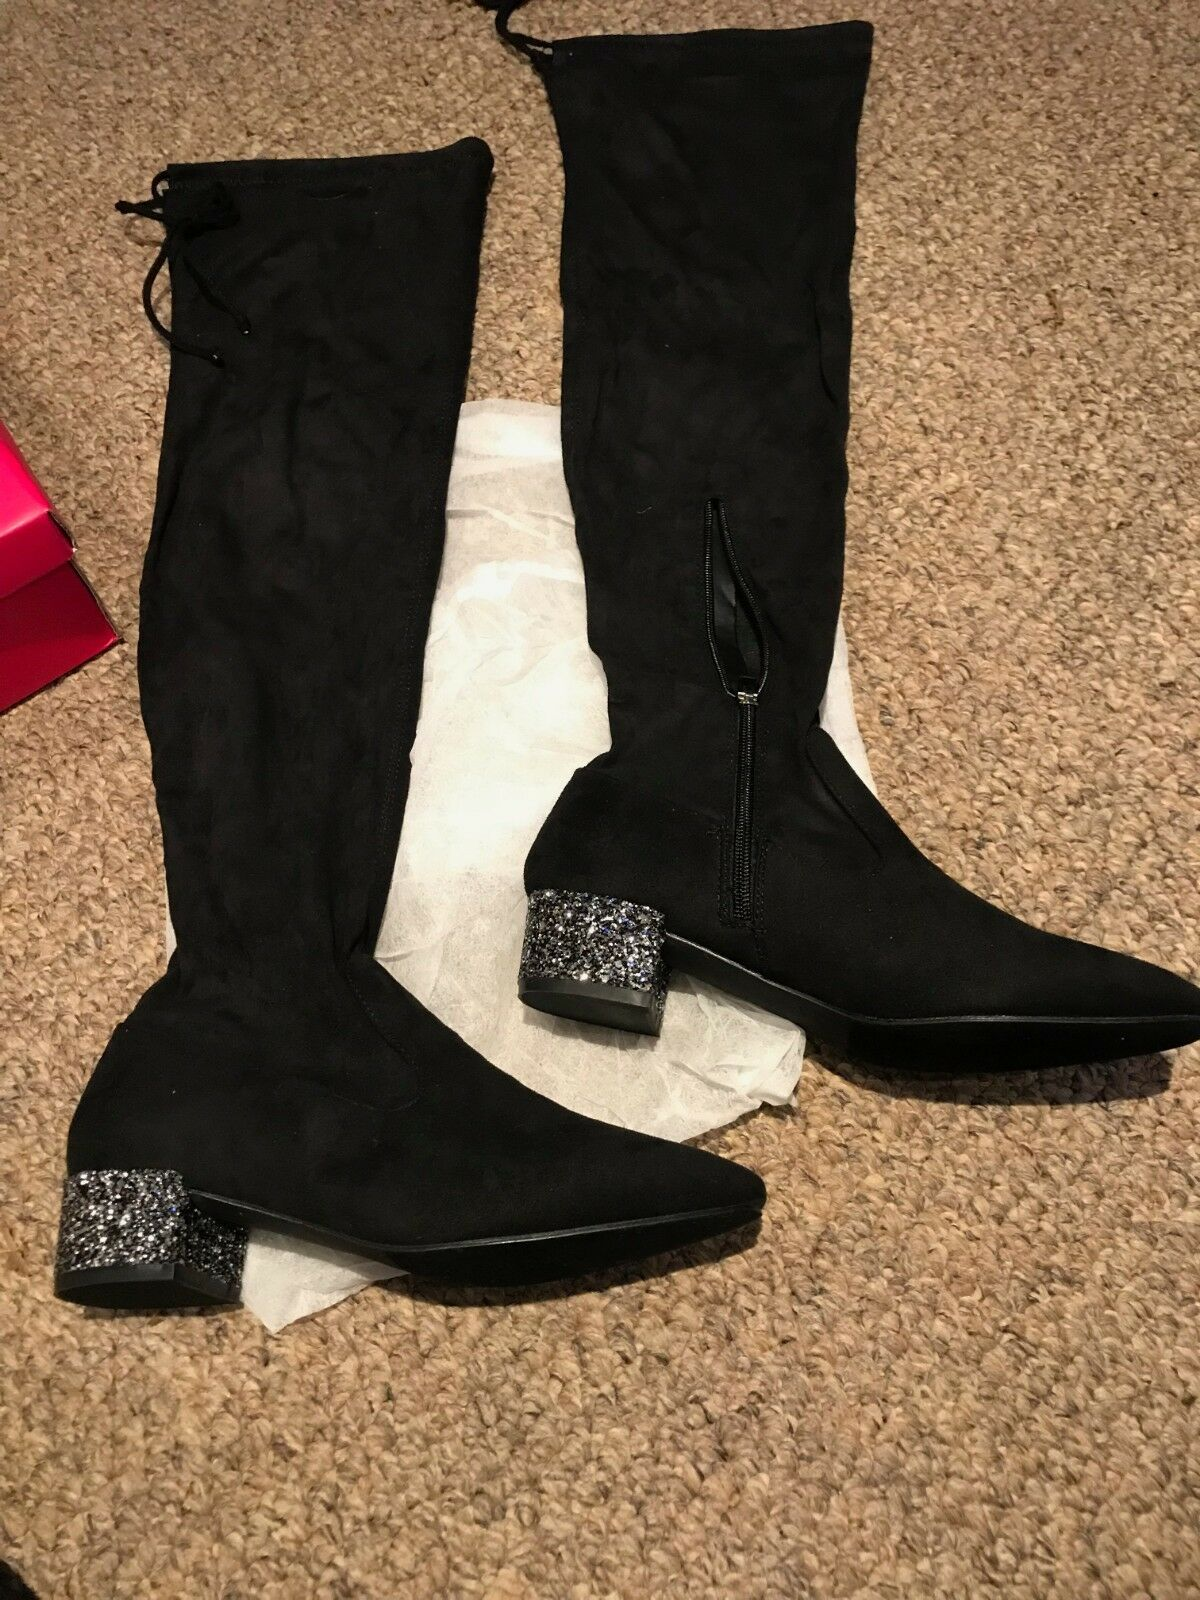 Catherine Malandrino Faux Suede Over the Knee Boots - Glitzy - Size 7.5